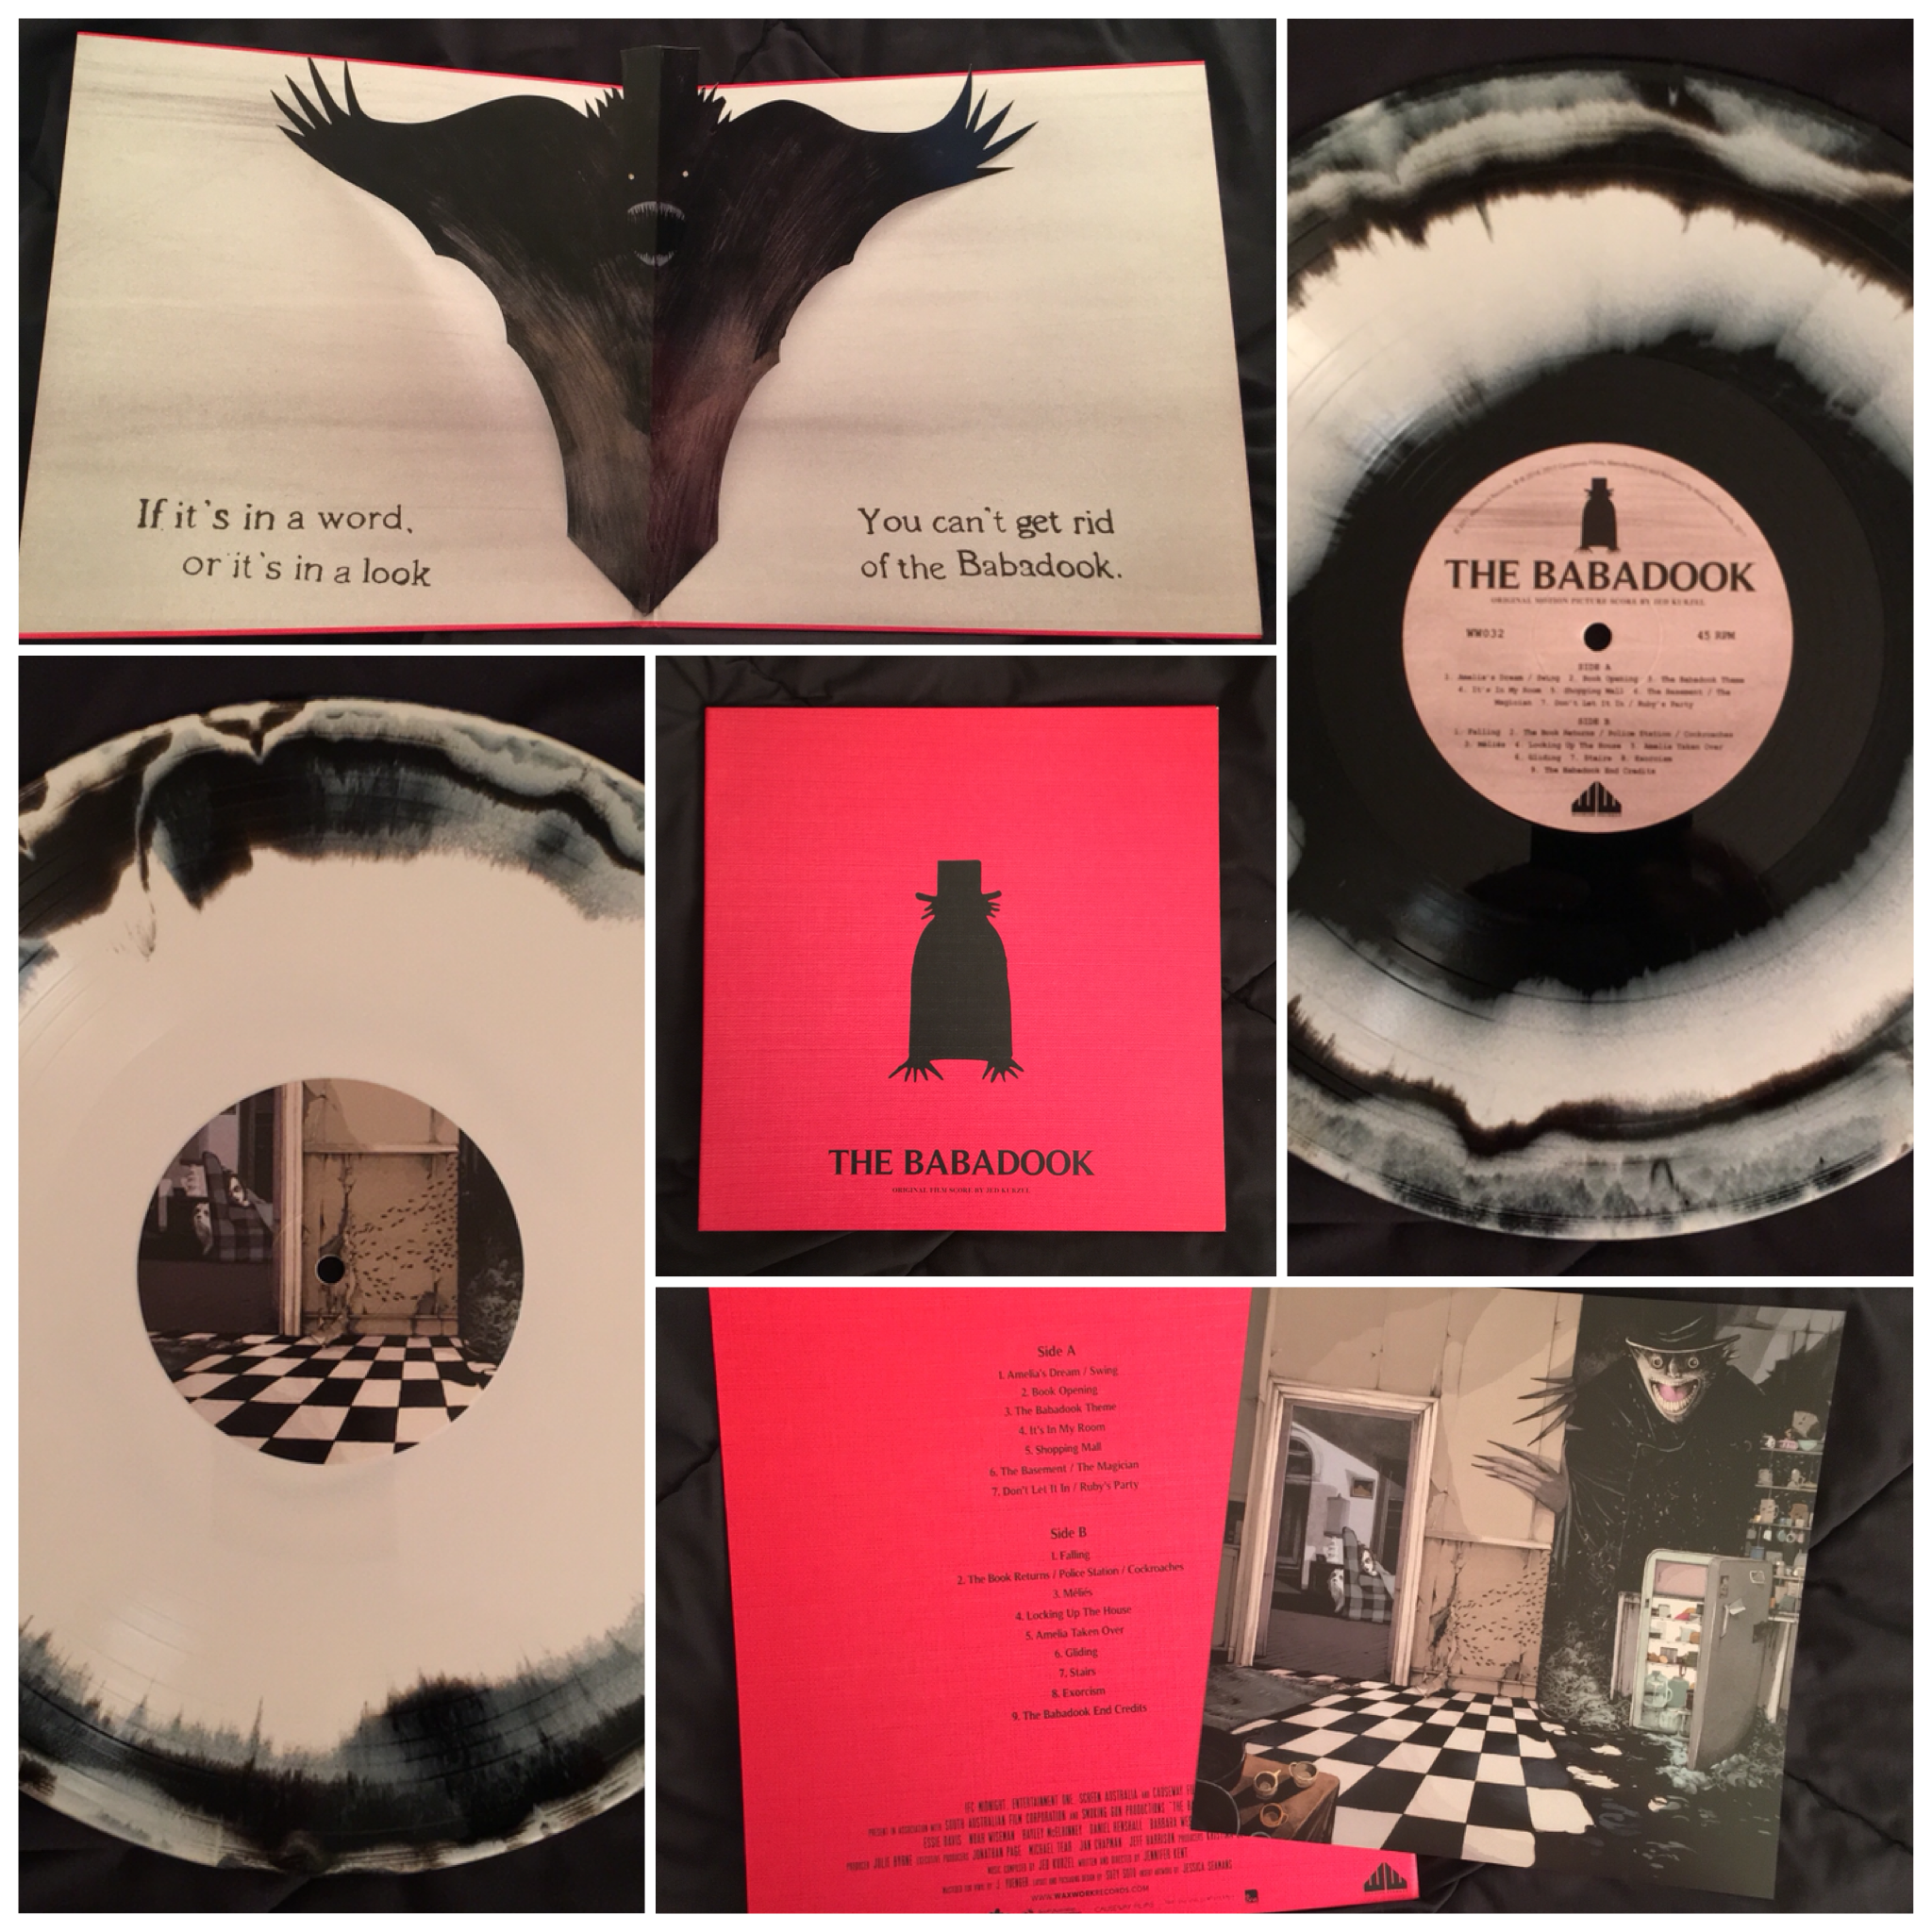 Original Film Score The Babadook Pop Up Gatefold Jacket On Colored Vinyl I Love Waxwork Records Their Releases Are Spect Babadook Beautiful Words Waxwork